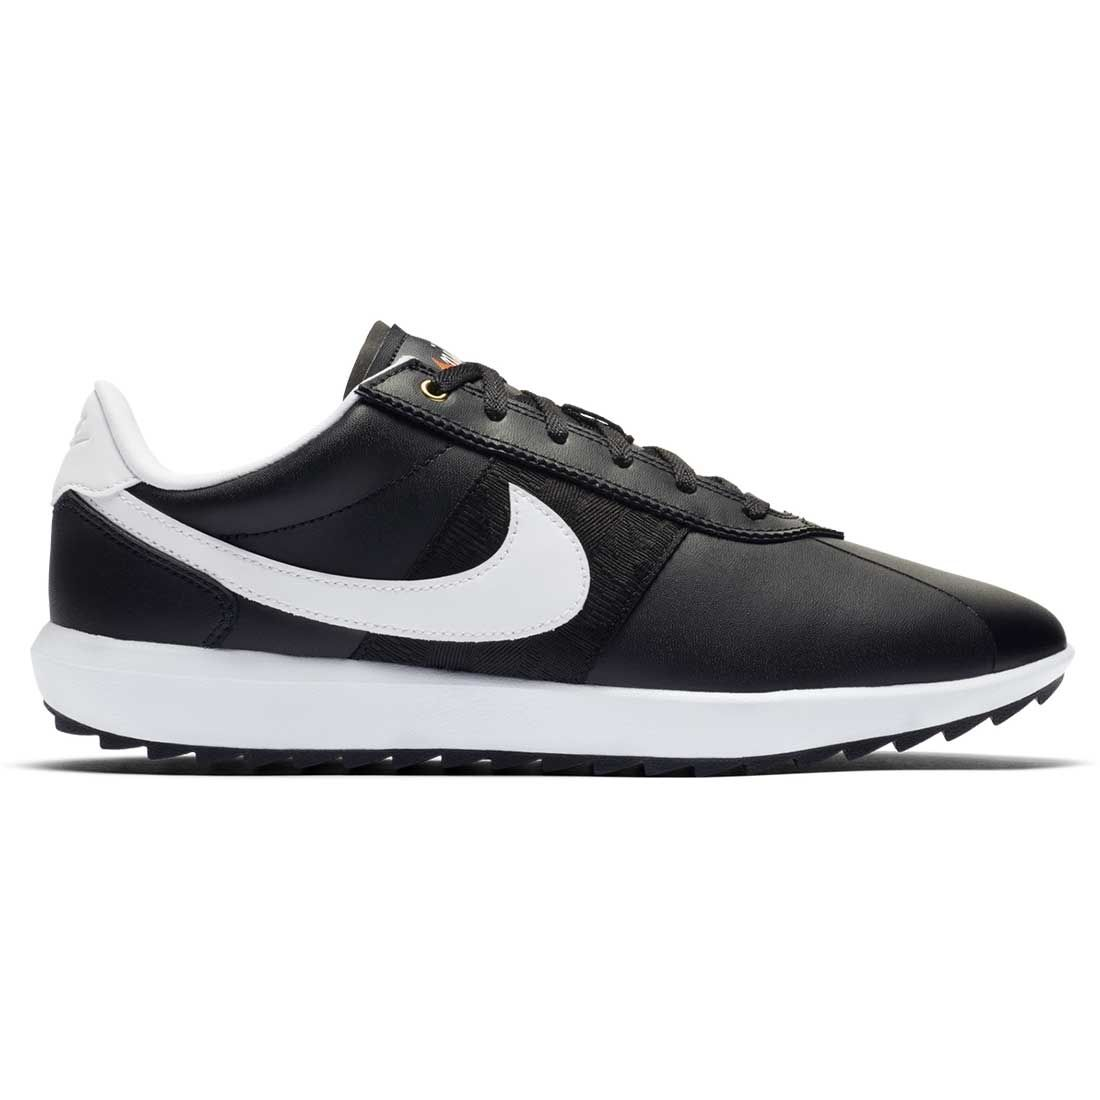 Sympton encuentro lema  Buy Nike Women's Cortez G Golf Shoes Black/White/Gold | Golf Discount